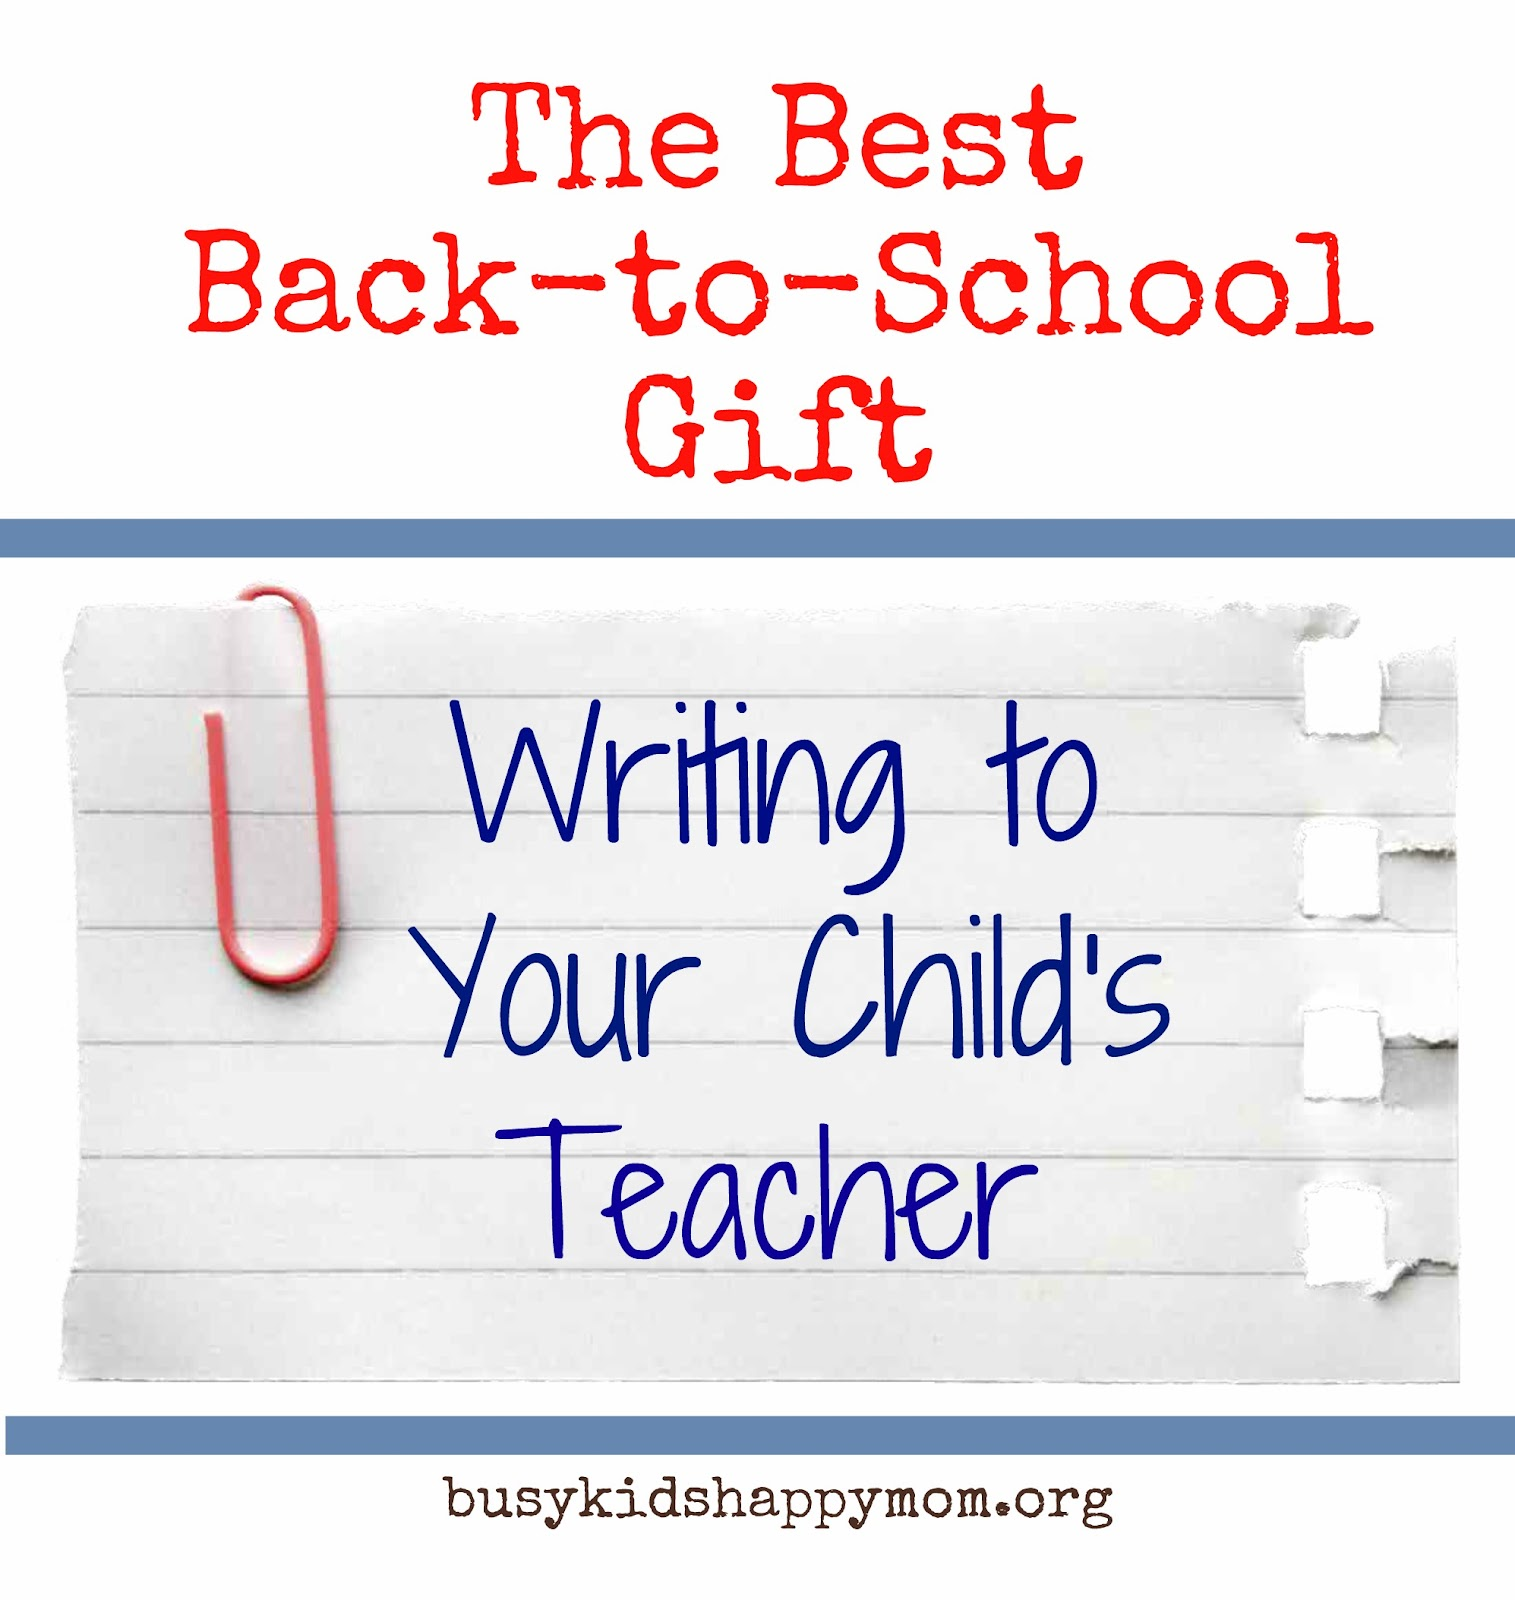 FREE Printables for Back to School - Teacher Gift Ideas ...